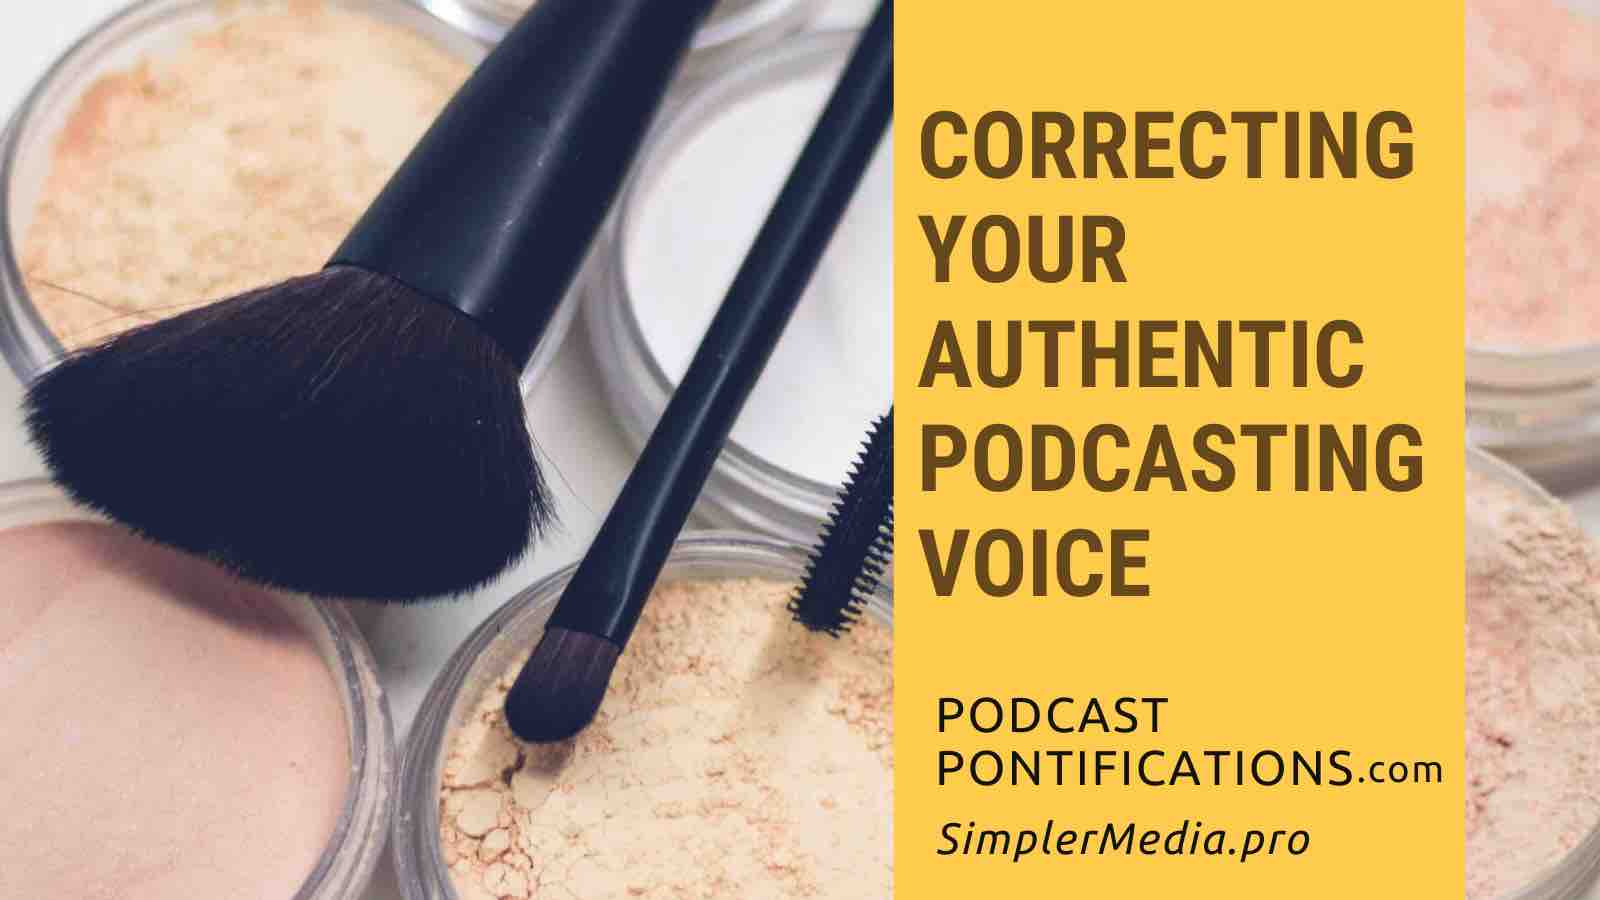 Correcting Your Authentic Podcasting Voice